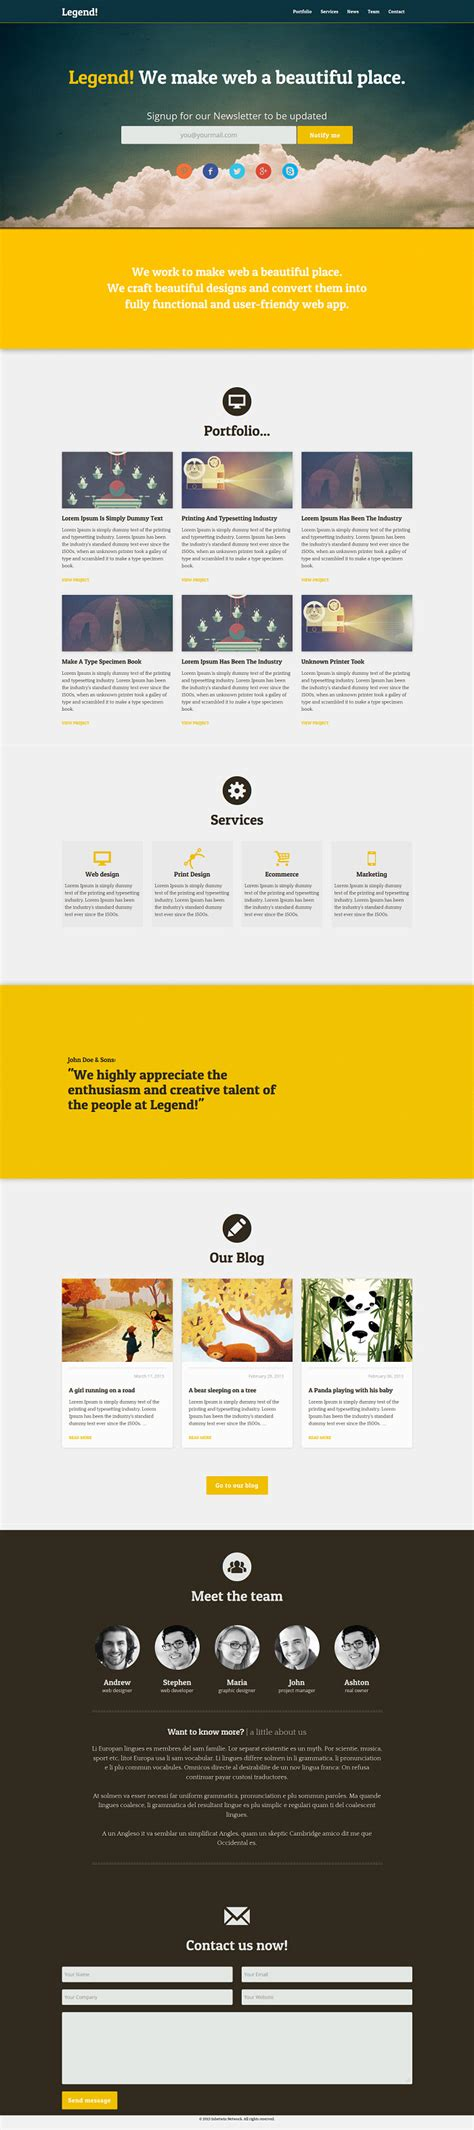 Responsive Psd Web Templates 25 Free Templates Psd Files Design Blog Create Free Website Template